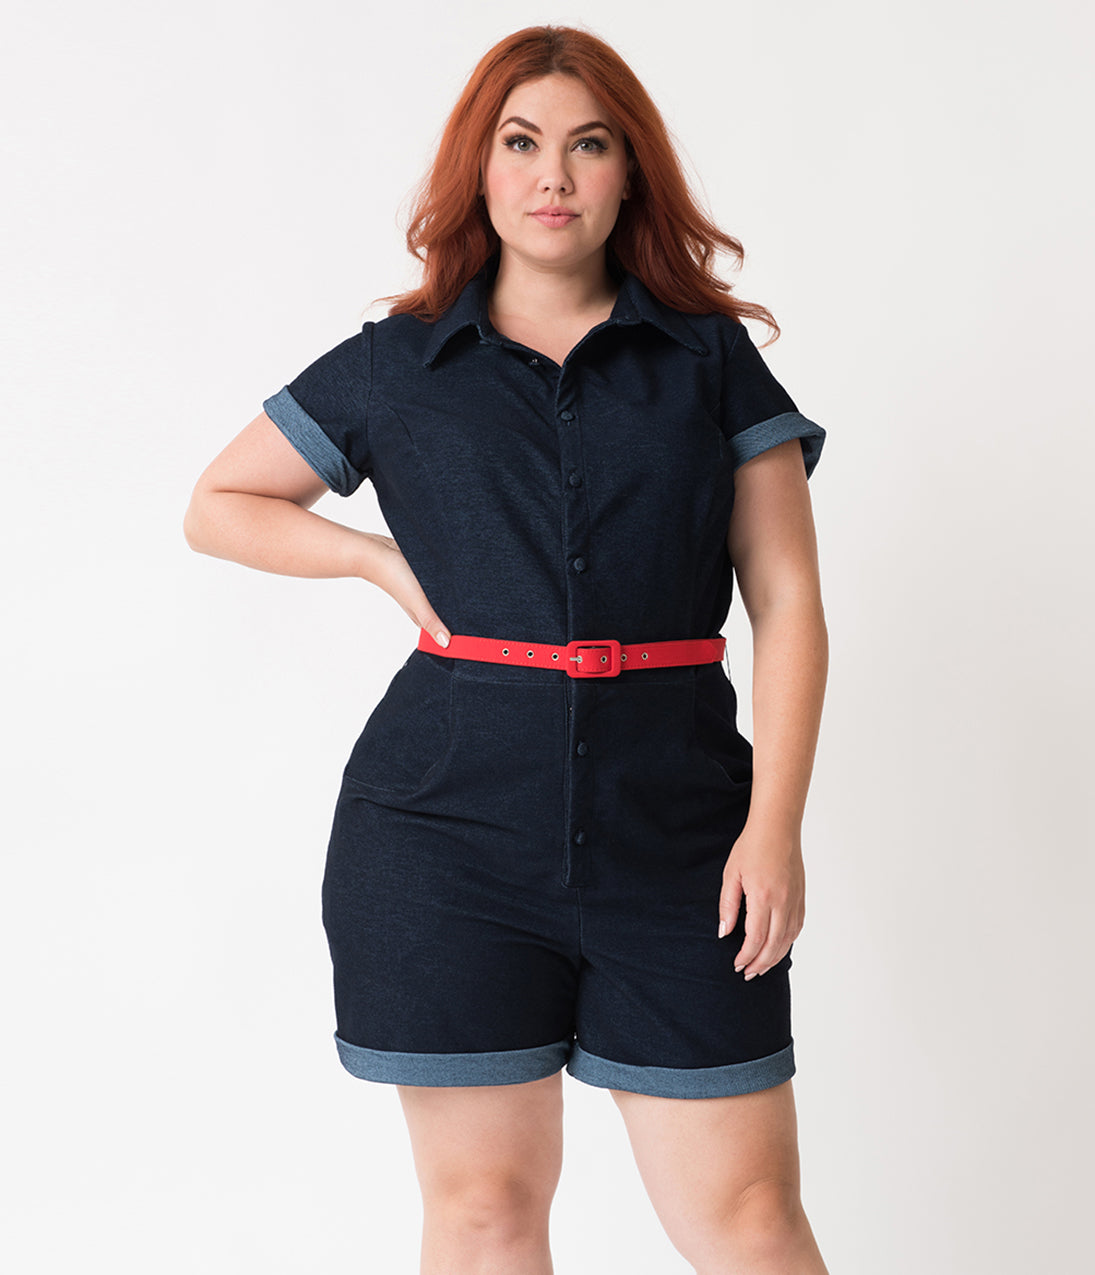 40s-50s Vintage Playsuits, Jumpsuits, Rompers History Unique Vintage Plus Size Dark Blue Denim Cotton Stretch Dixie Romper $88.00 AT vintagedancer.com